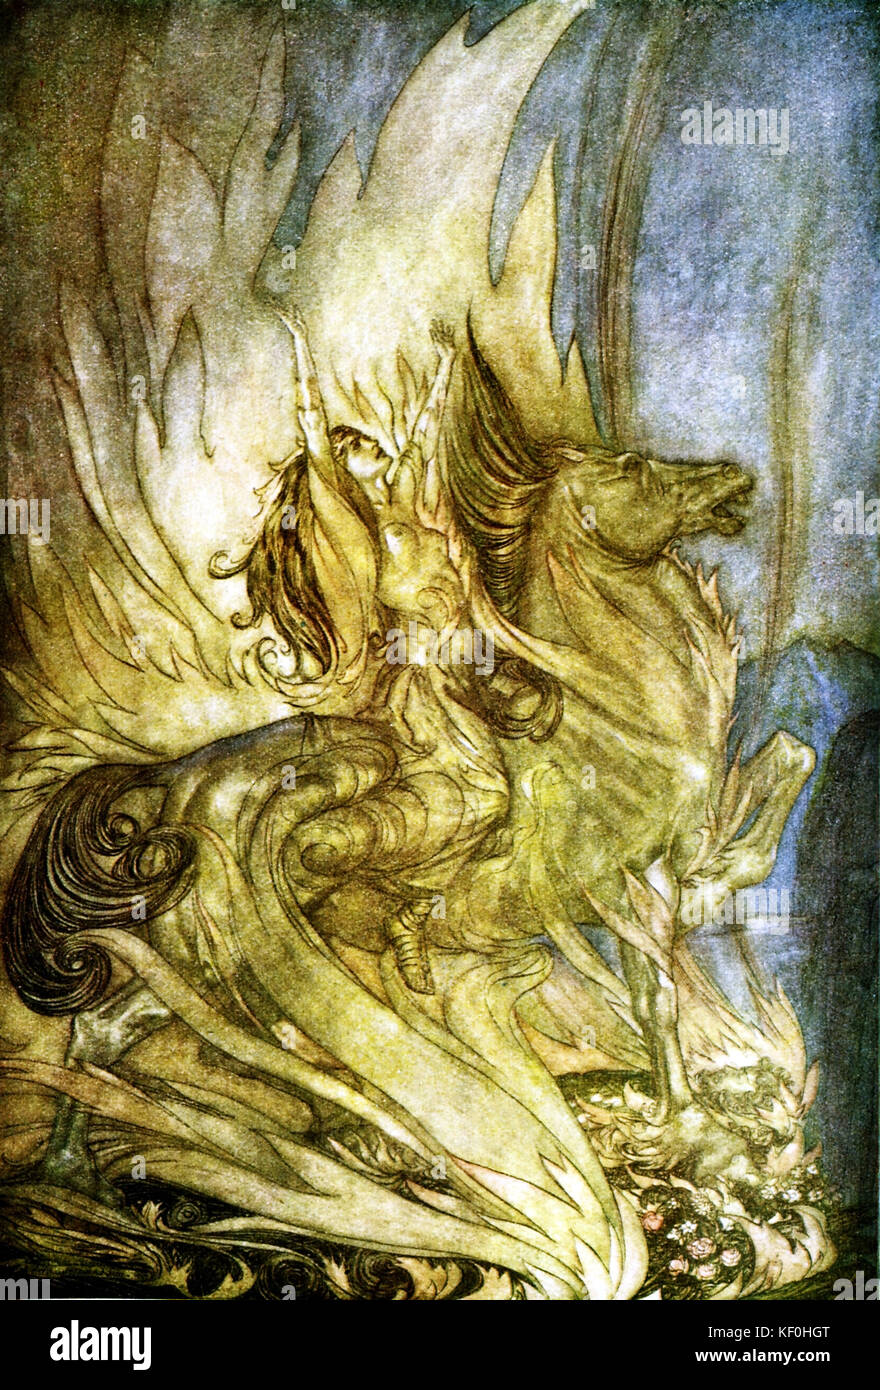 The Twilight of the Gods / Göttterdämmerung by Richard Wagner. Brünnhilde immolates herself by riding - Stock Image